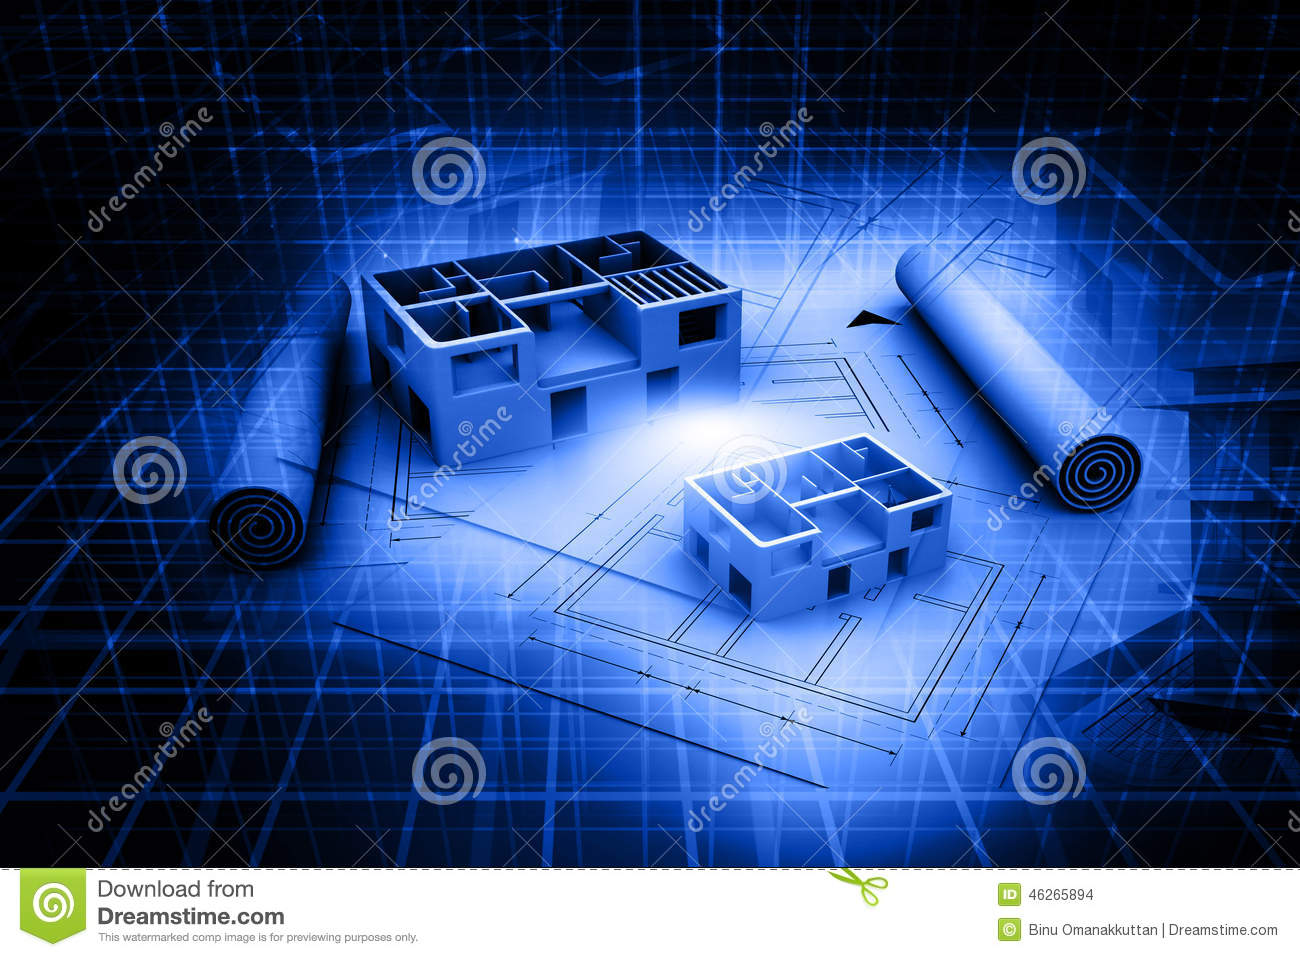 Architecture Blueprints 3d architecture abstract blueprint stock photos, images, & pictures